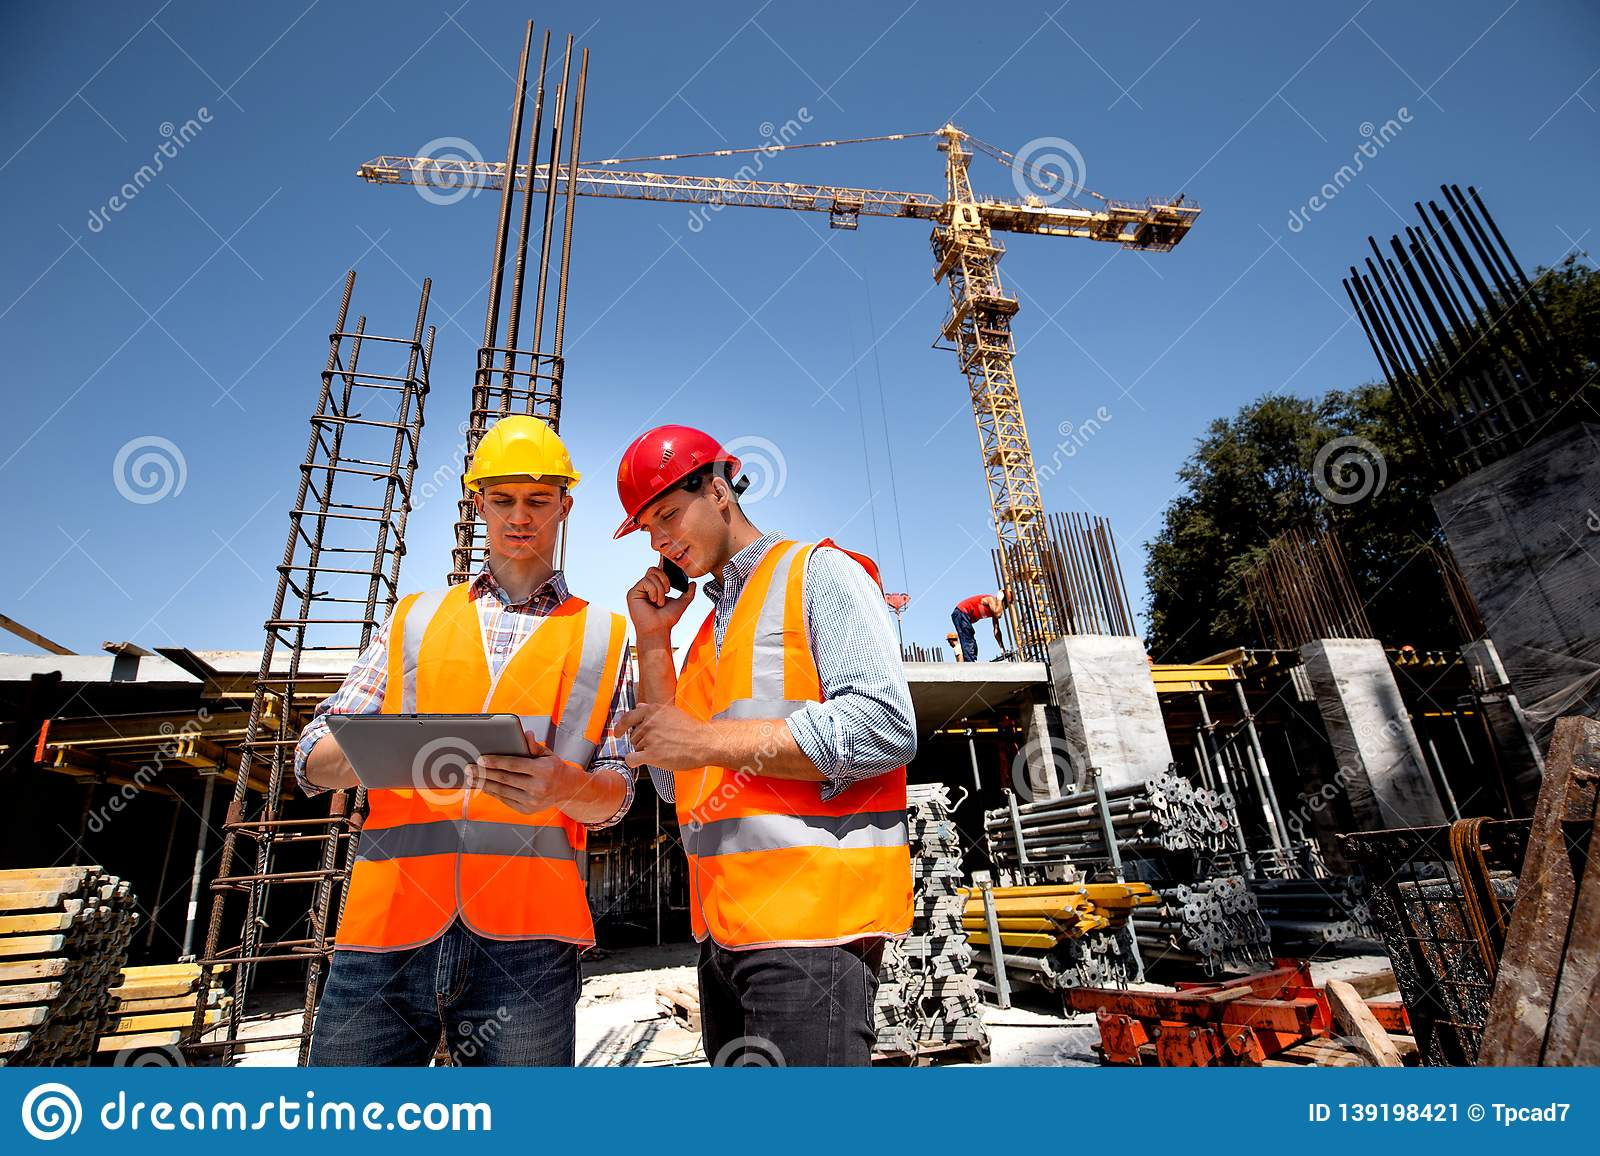 Structural engineer and architect dressed in orange work vests and hard hats discuss the construction process by the